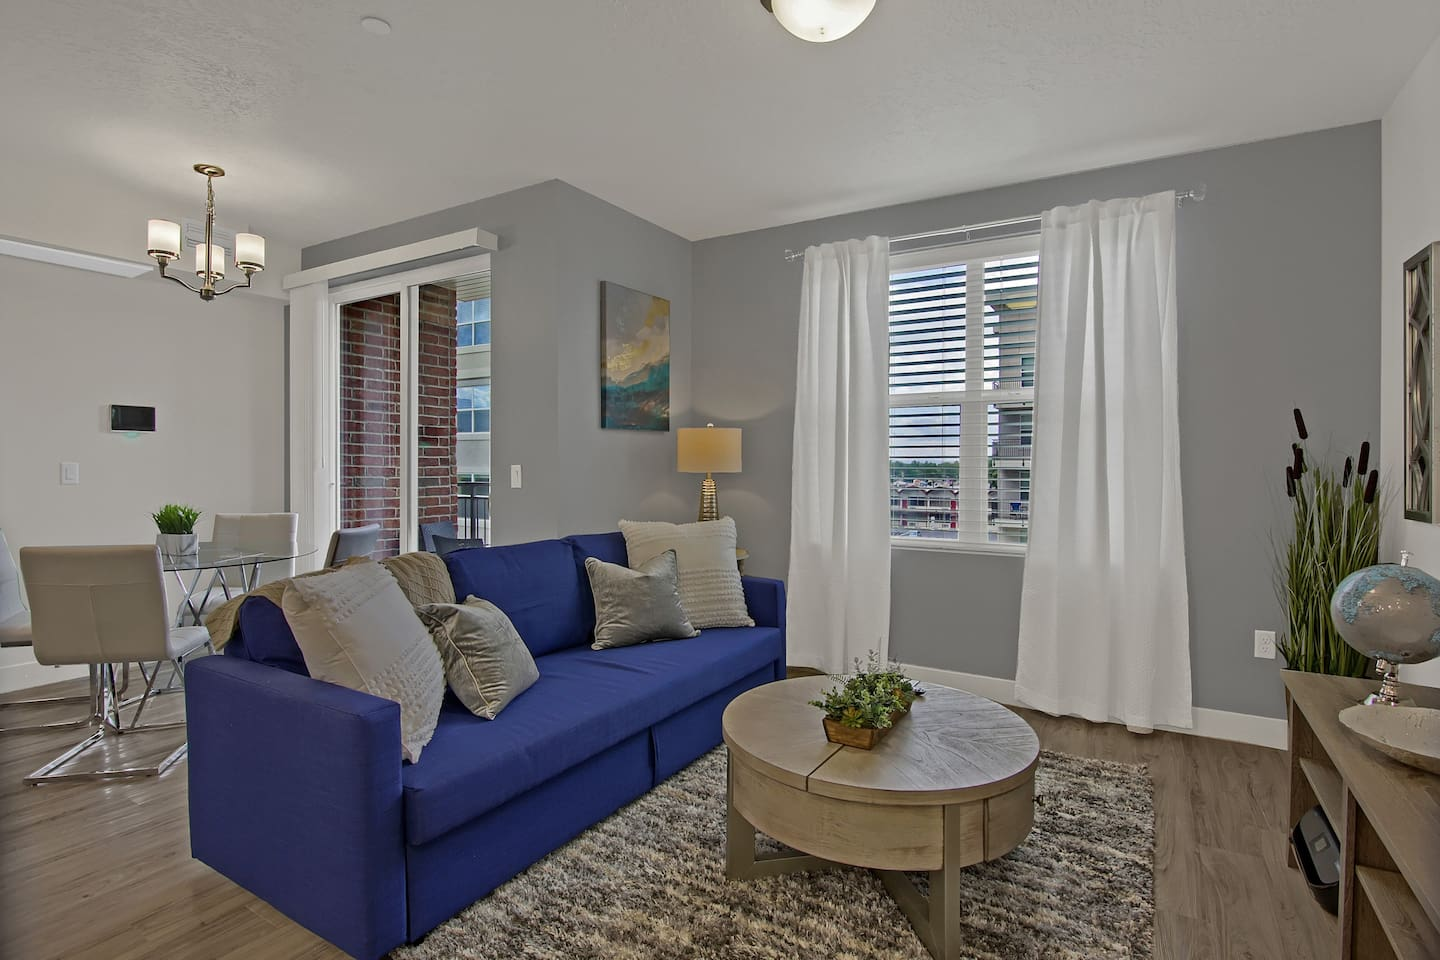 2 bed / 2 bath elite apartment with sleeper sofa, dinning area, and articulating coffee table